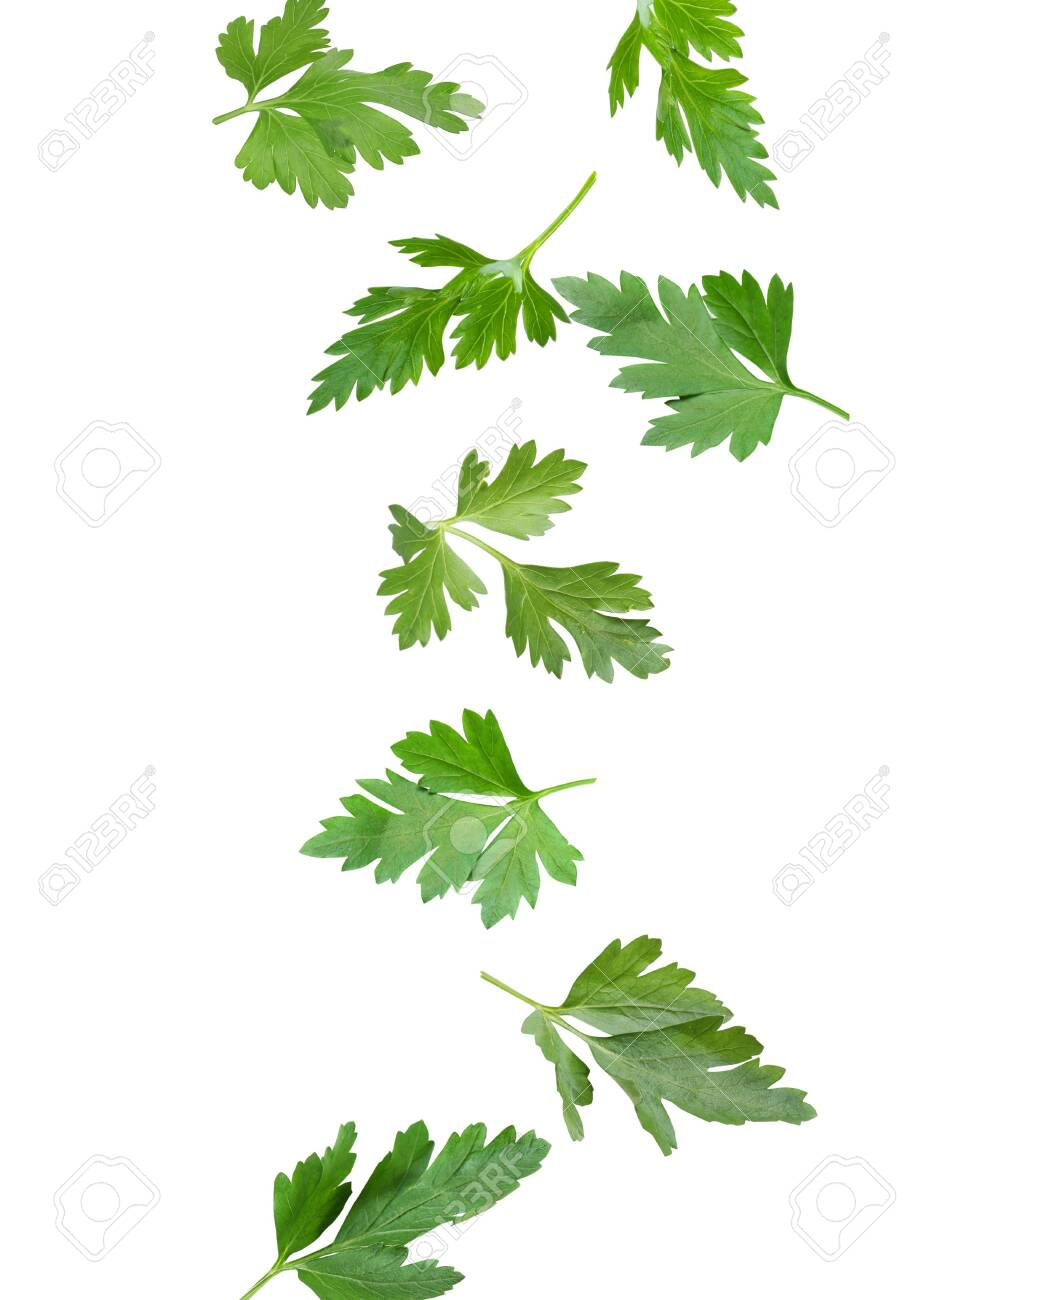 Green parsley leaves falling on white background - 156971827